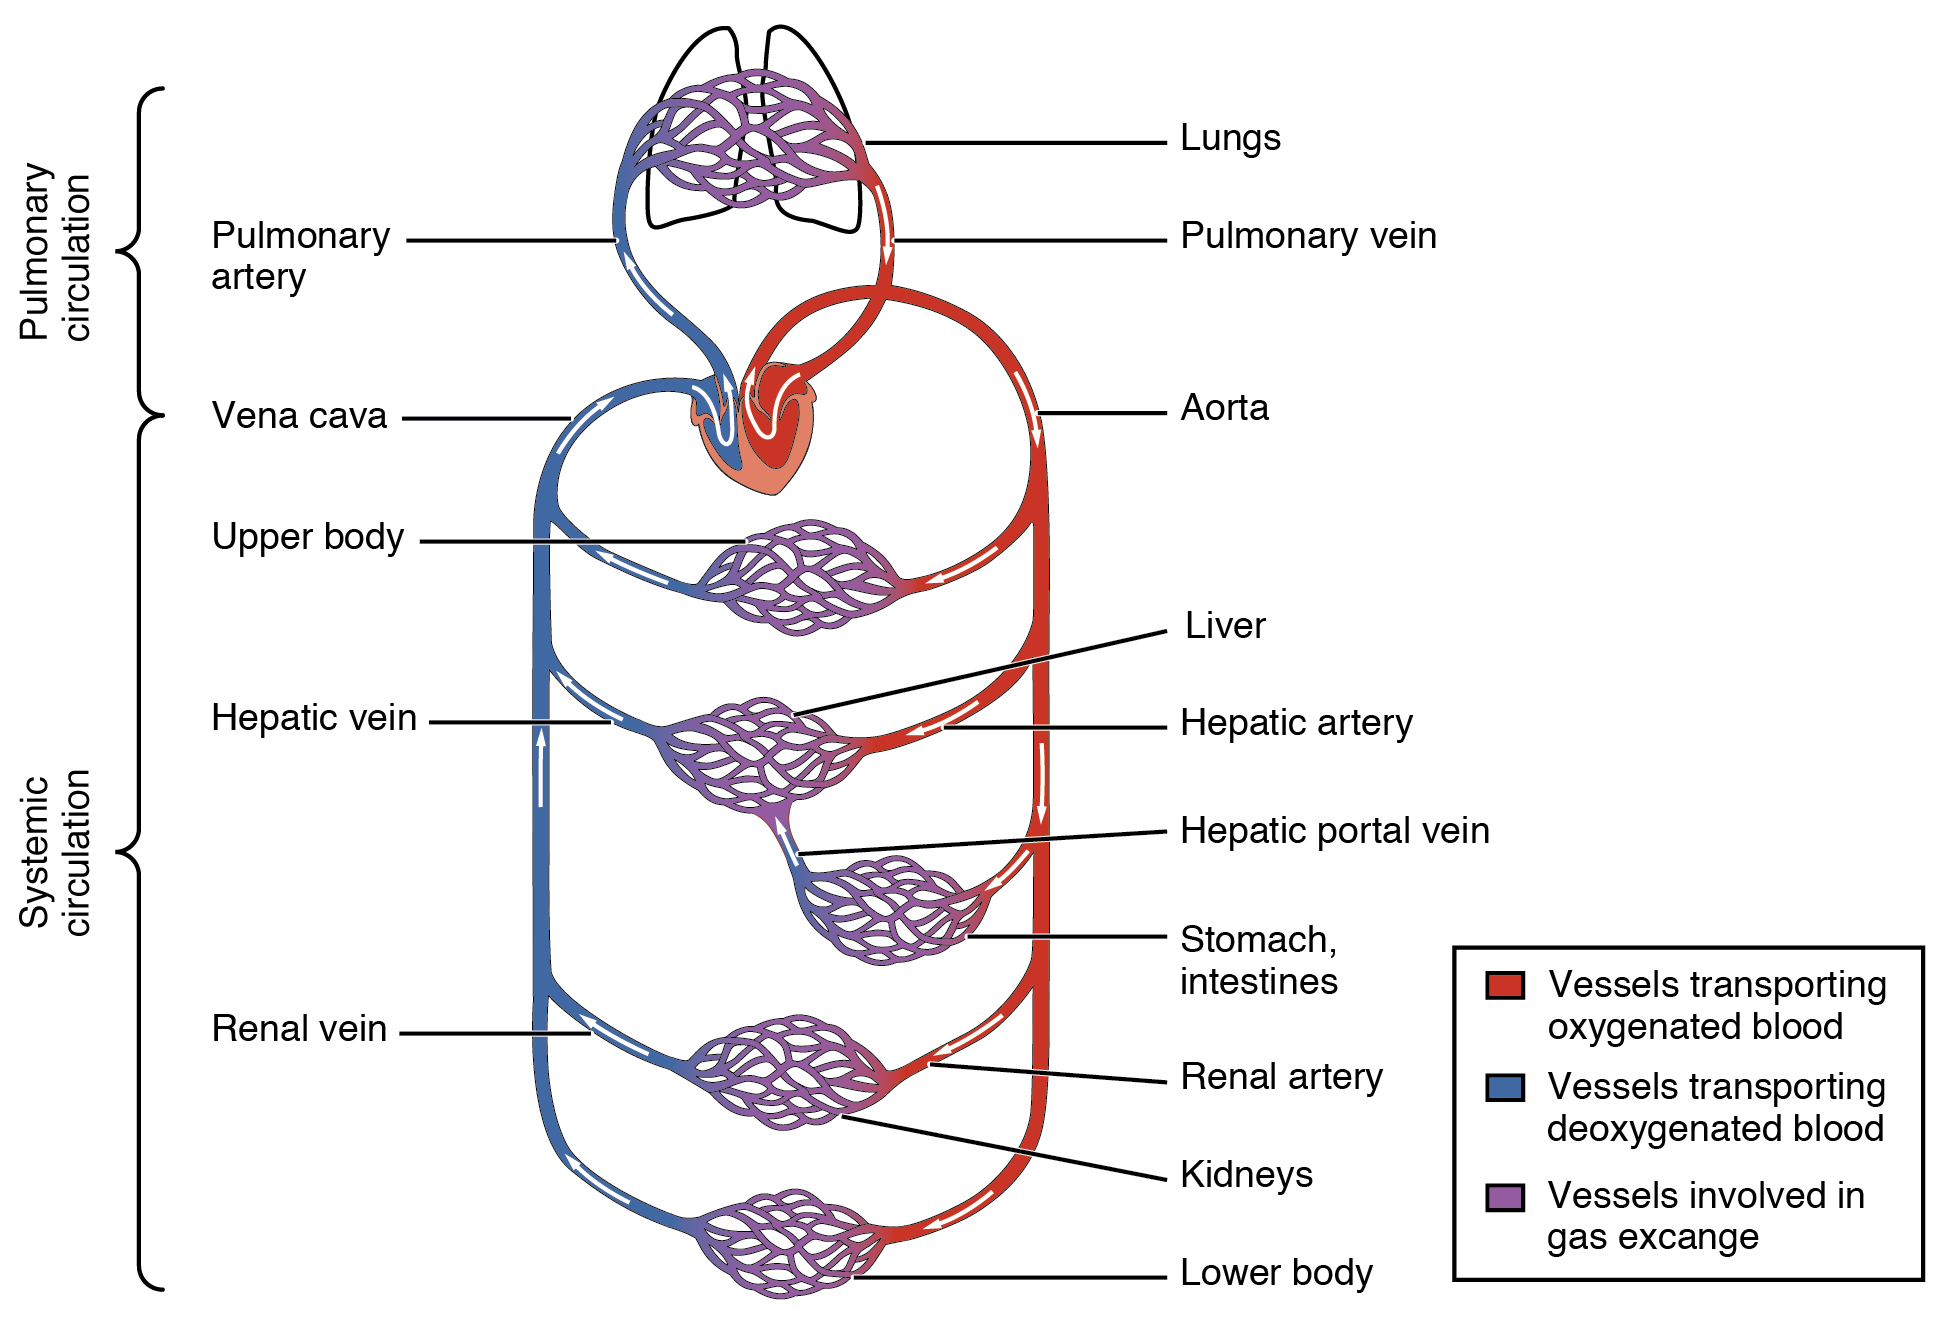 201 structure and function of blood vessels anatomy and physiology this diagram shows how oxygenated and deoxygenated blood flow through the major organs in the body ccuart Choice Image